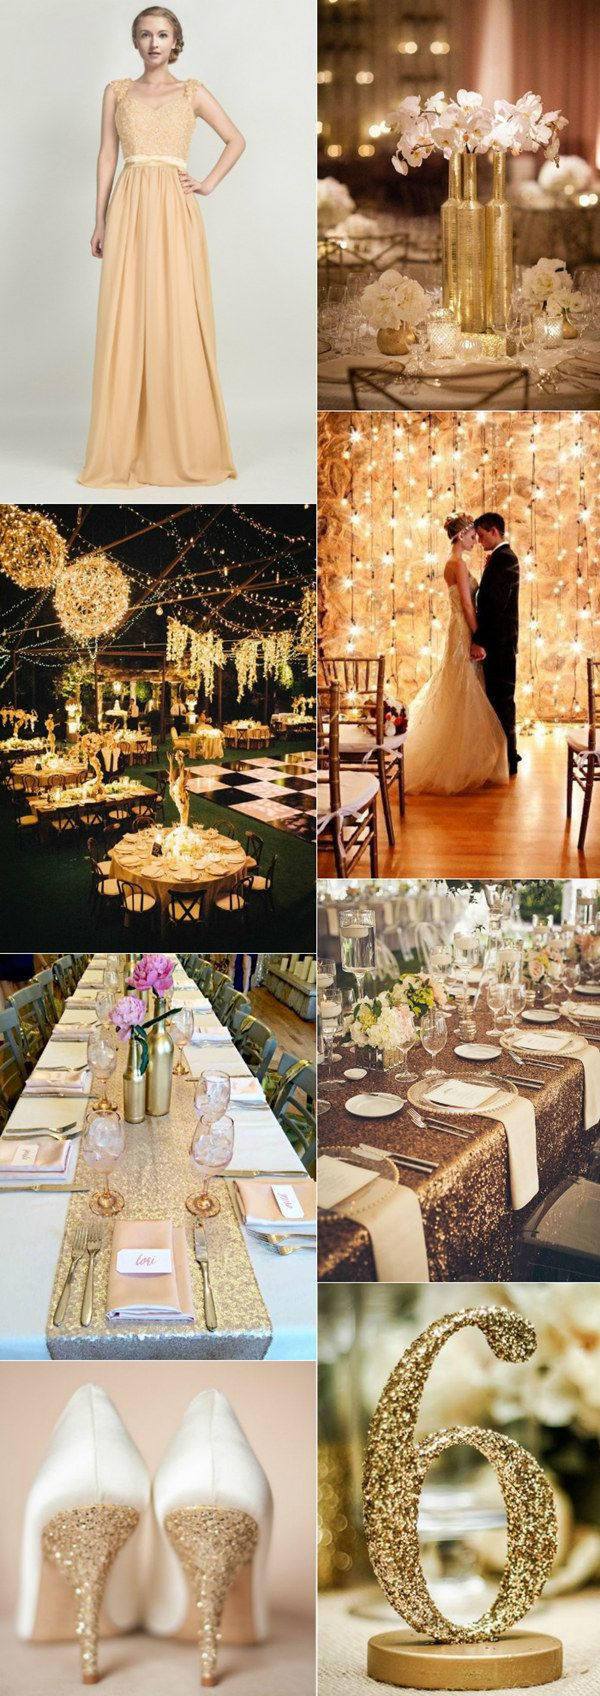 vintage gatsby 1920s themed gold wedding ideas